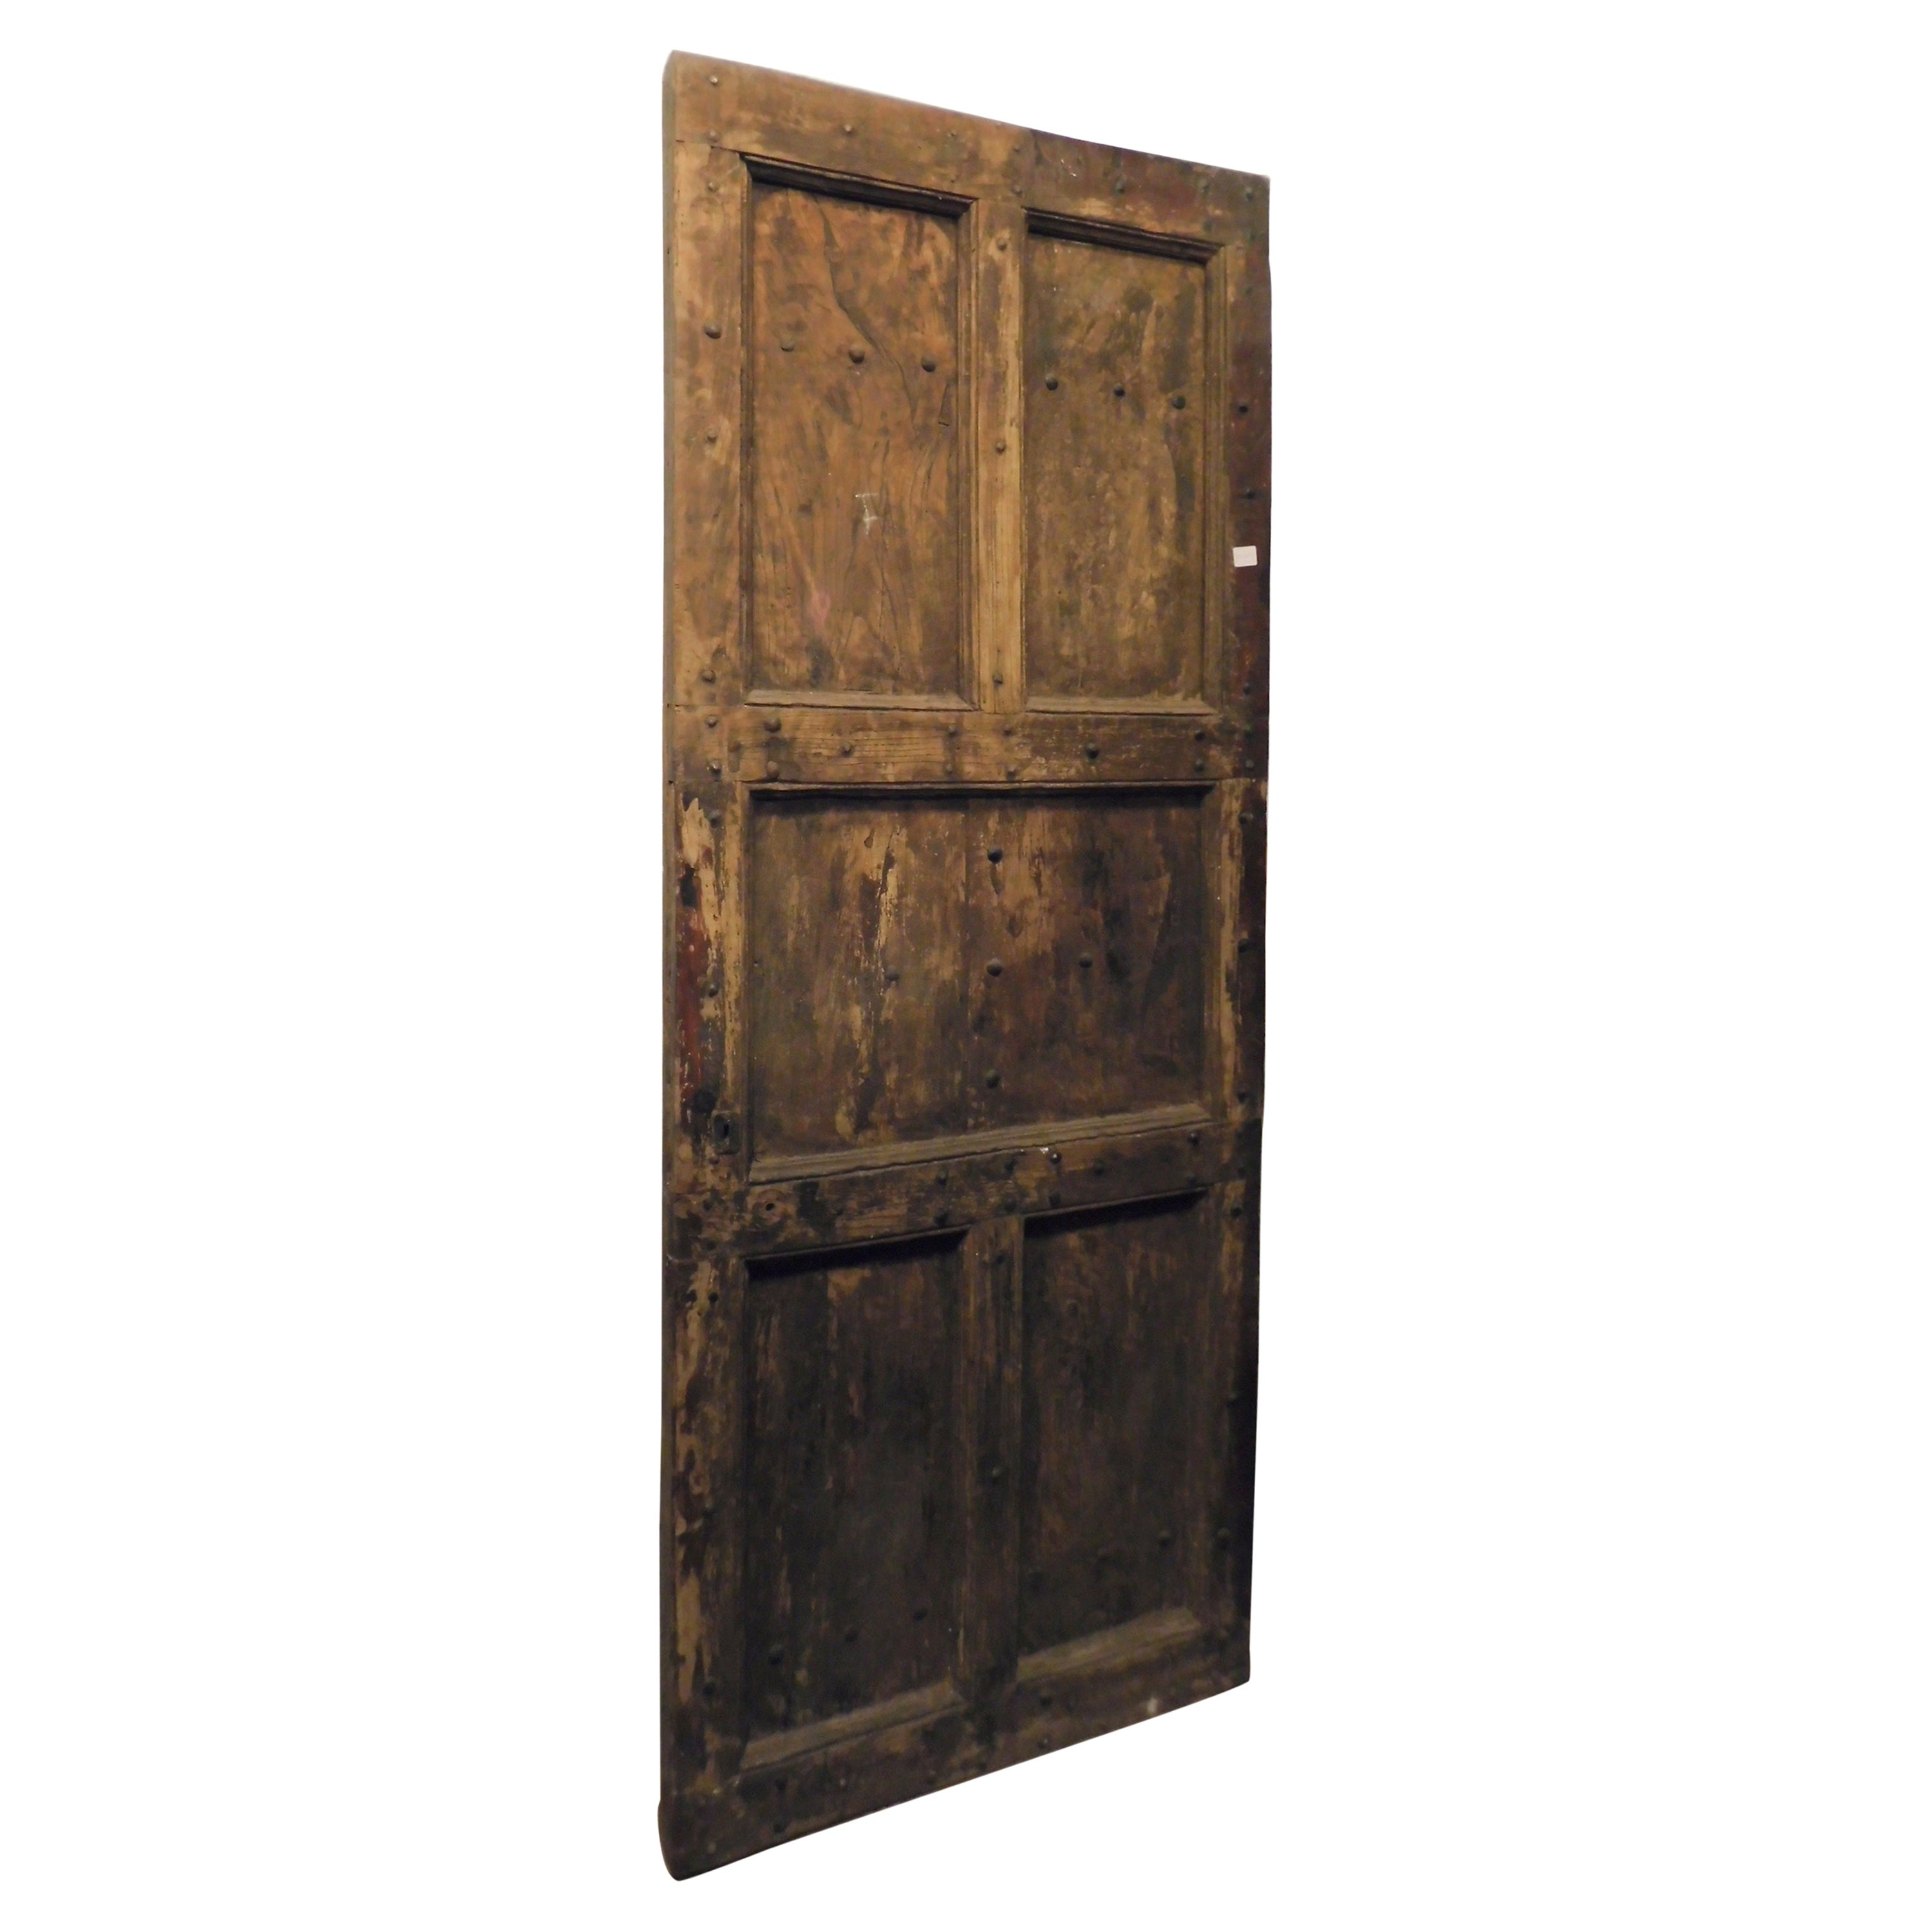 Antique Rustic Chestnut Door, Panels and Nails, 19th Century, Italy